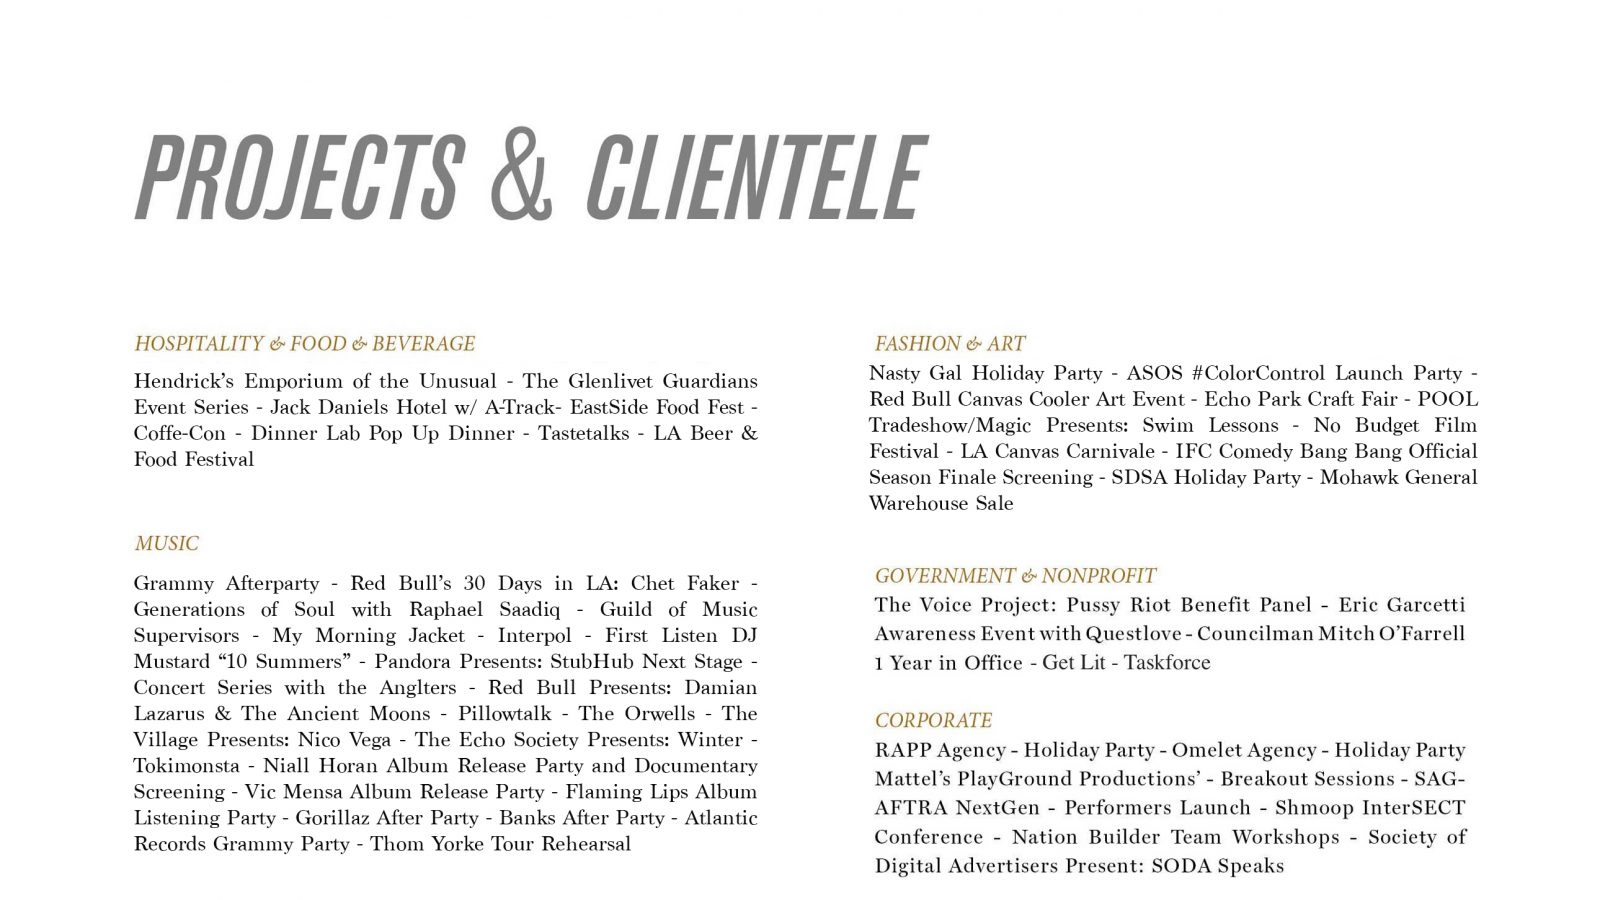 Projects_Clientele_P1